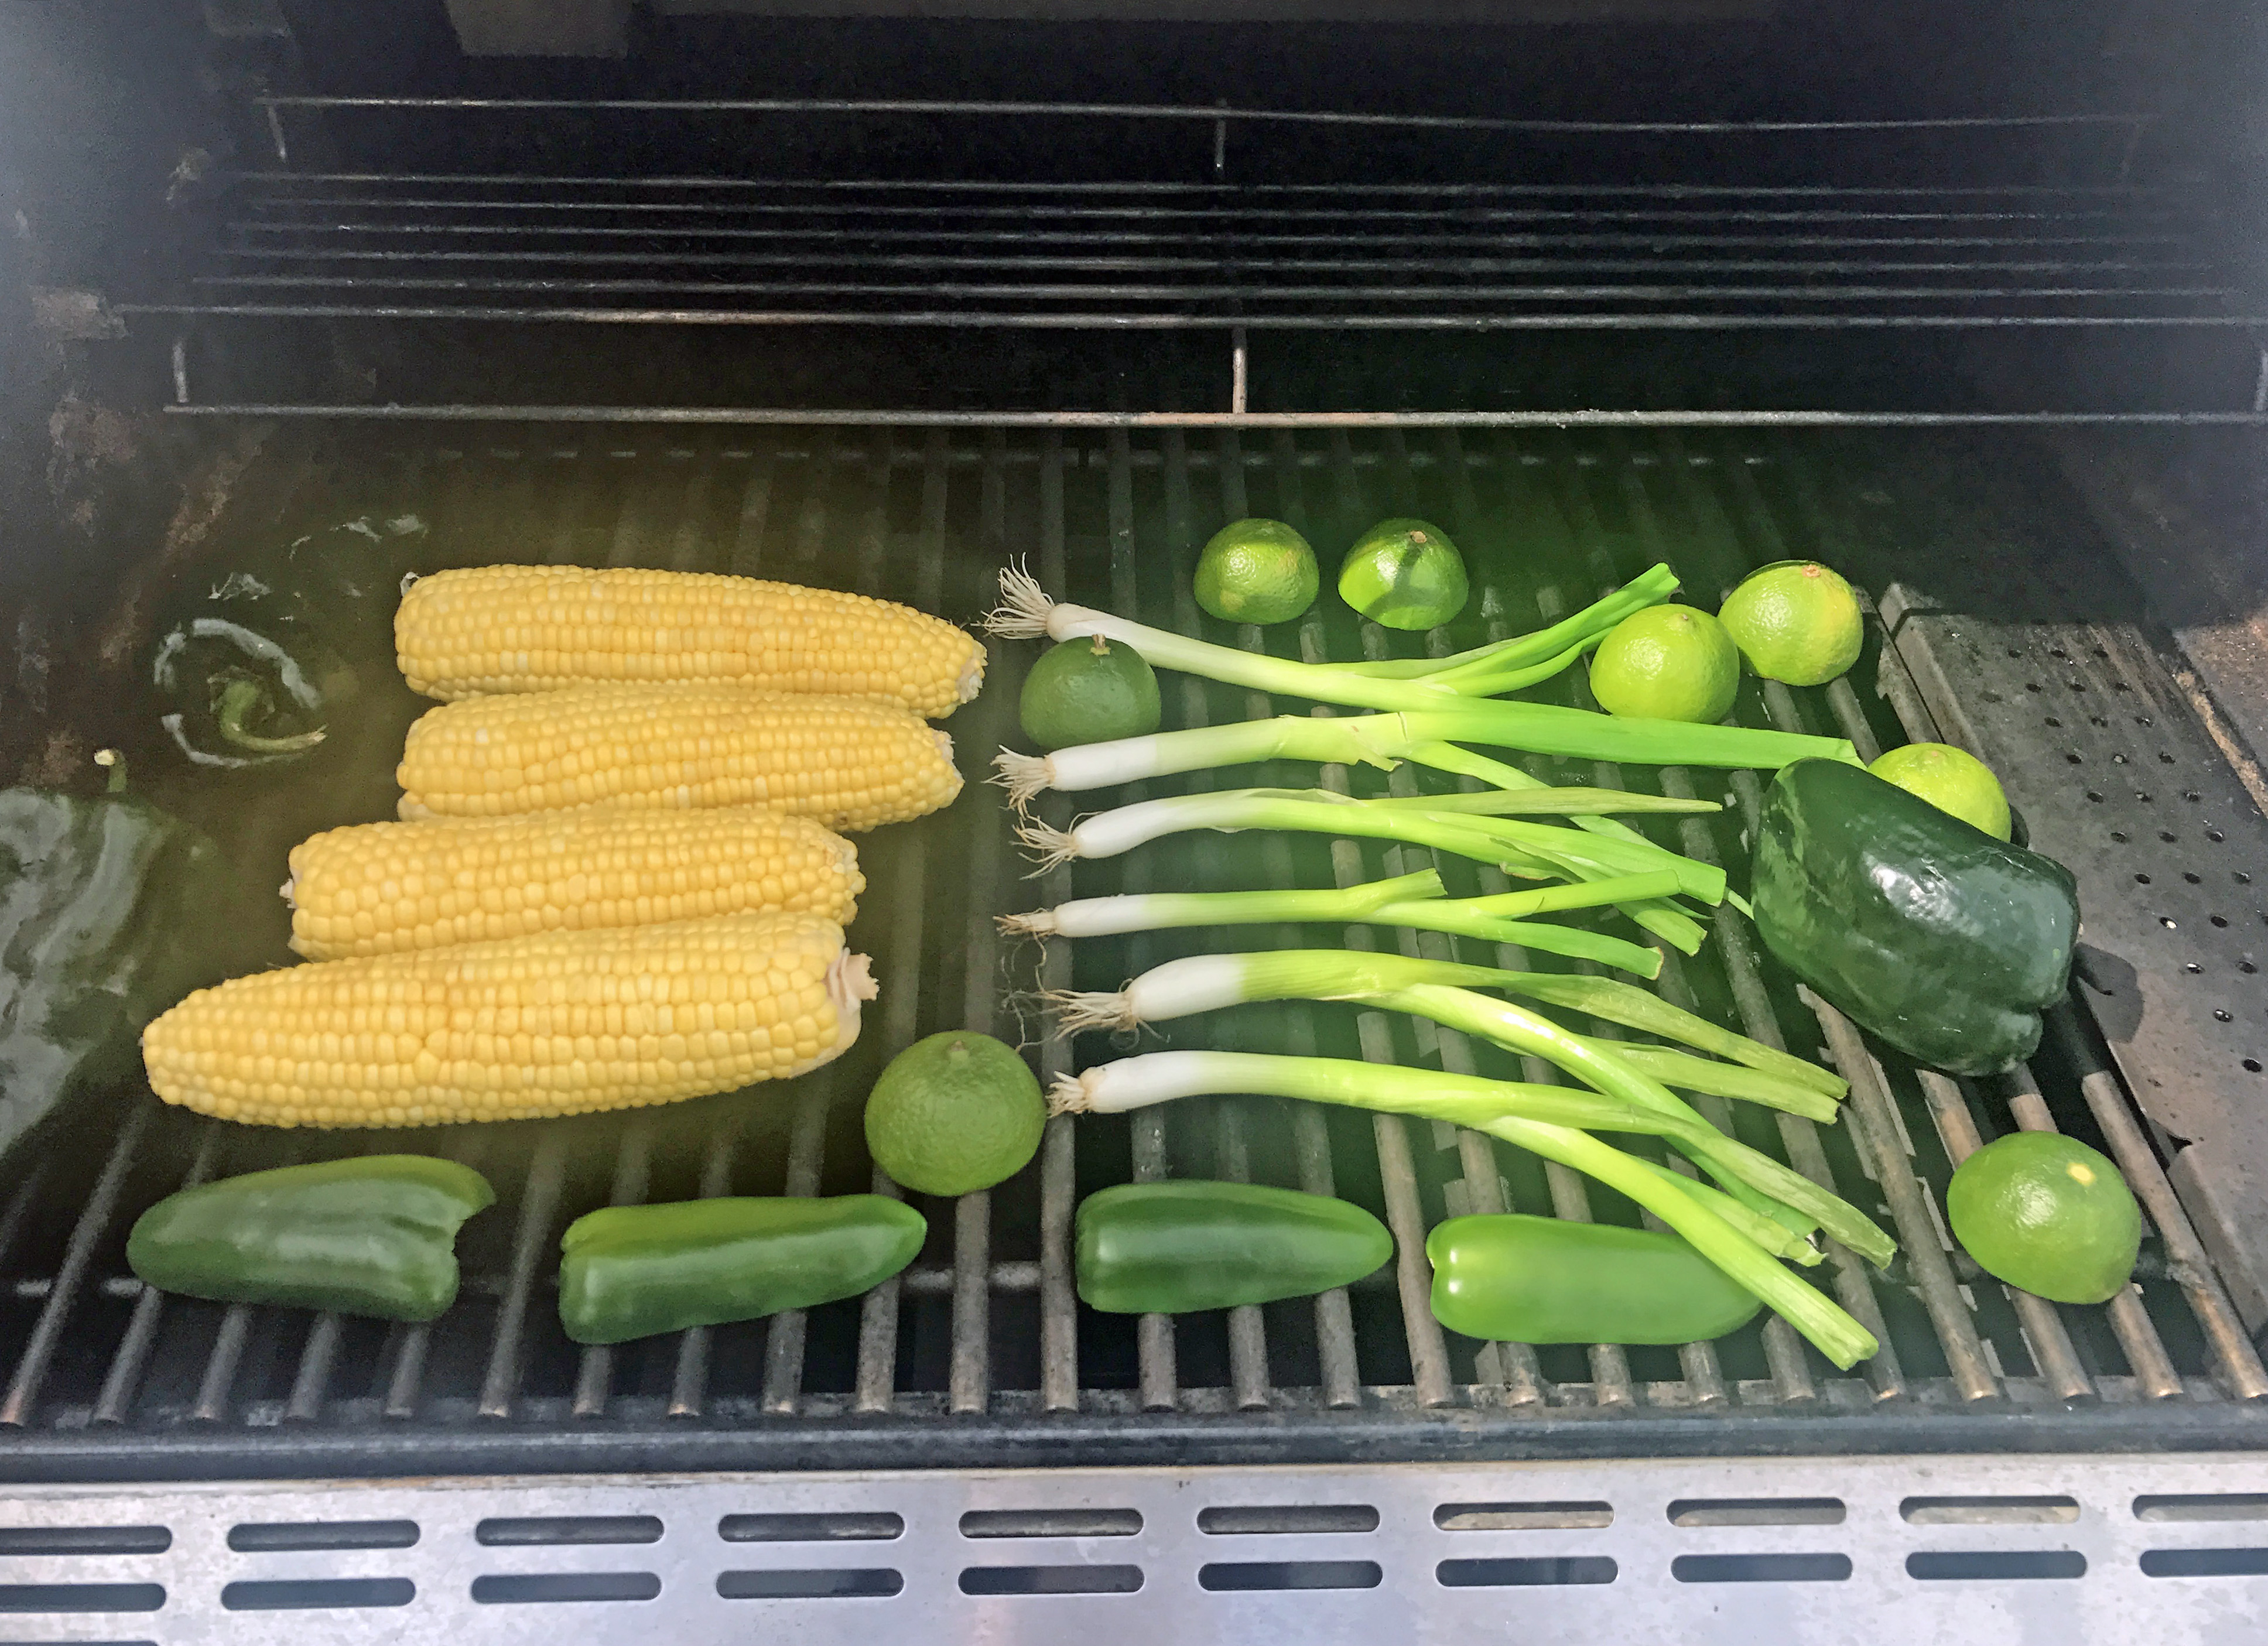 Corn Salad On the Grill